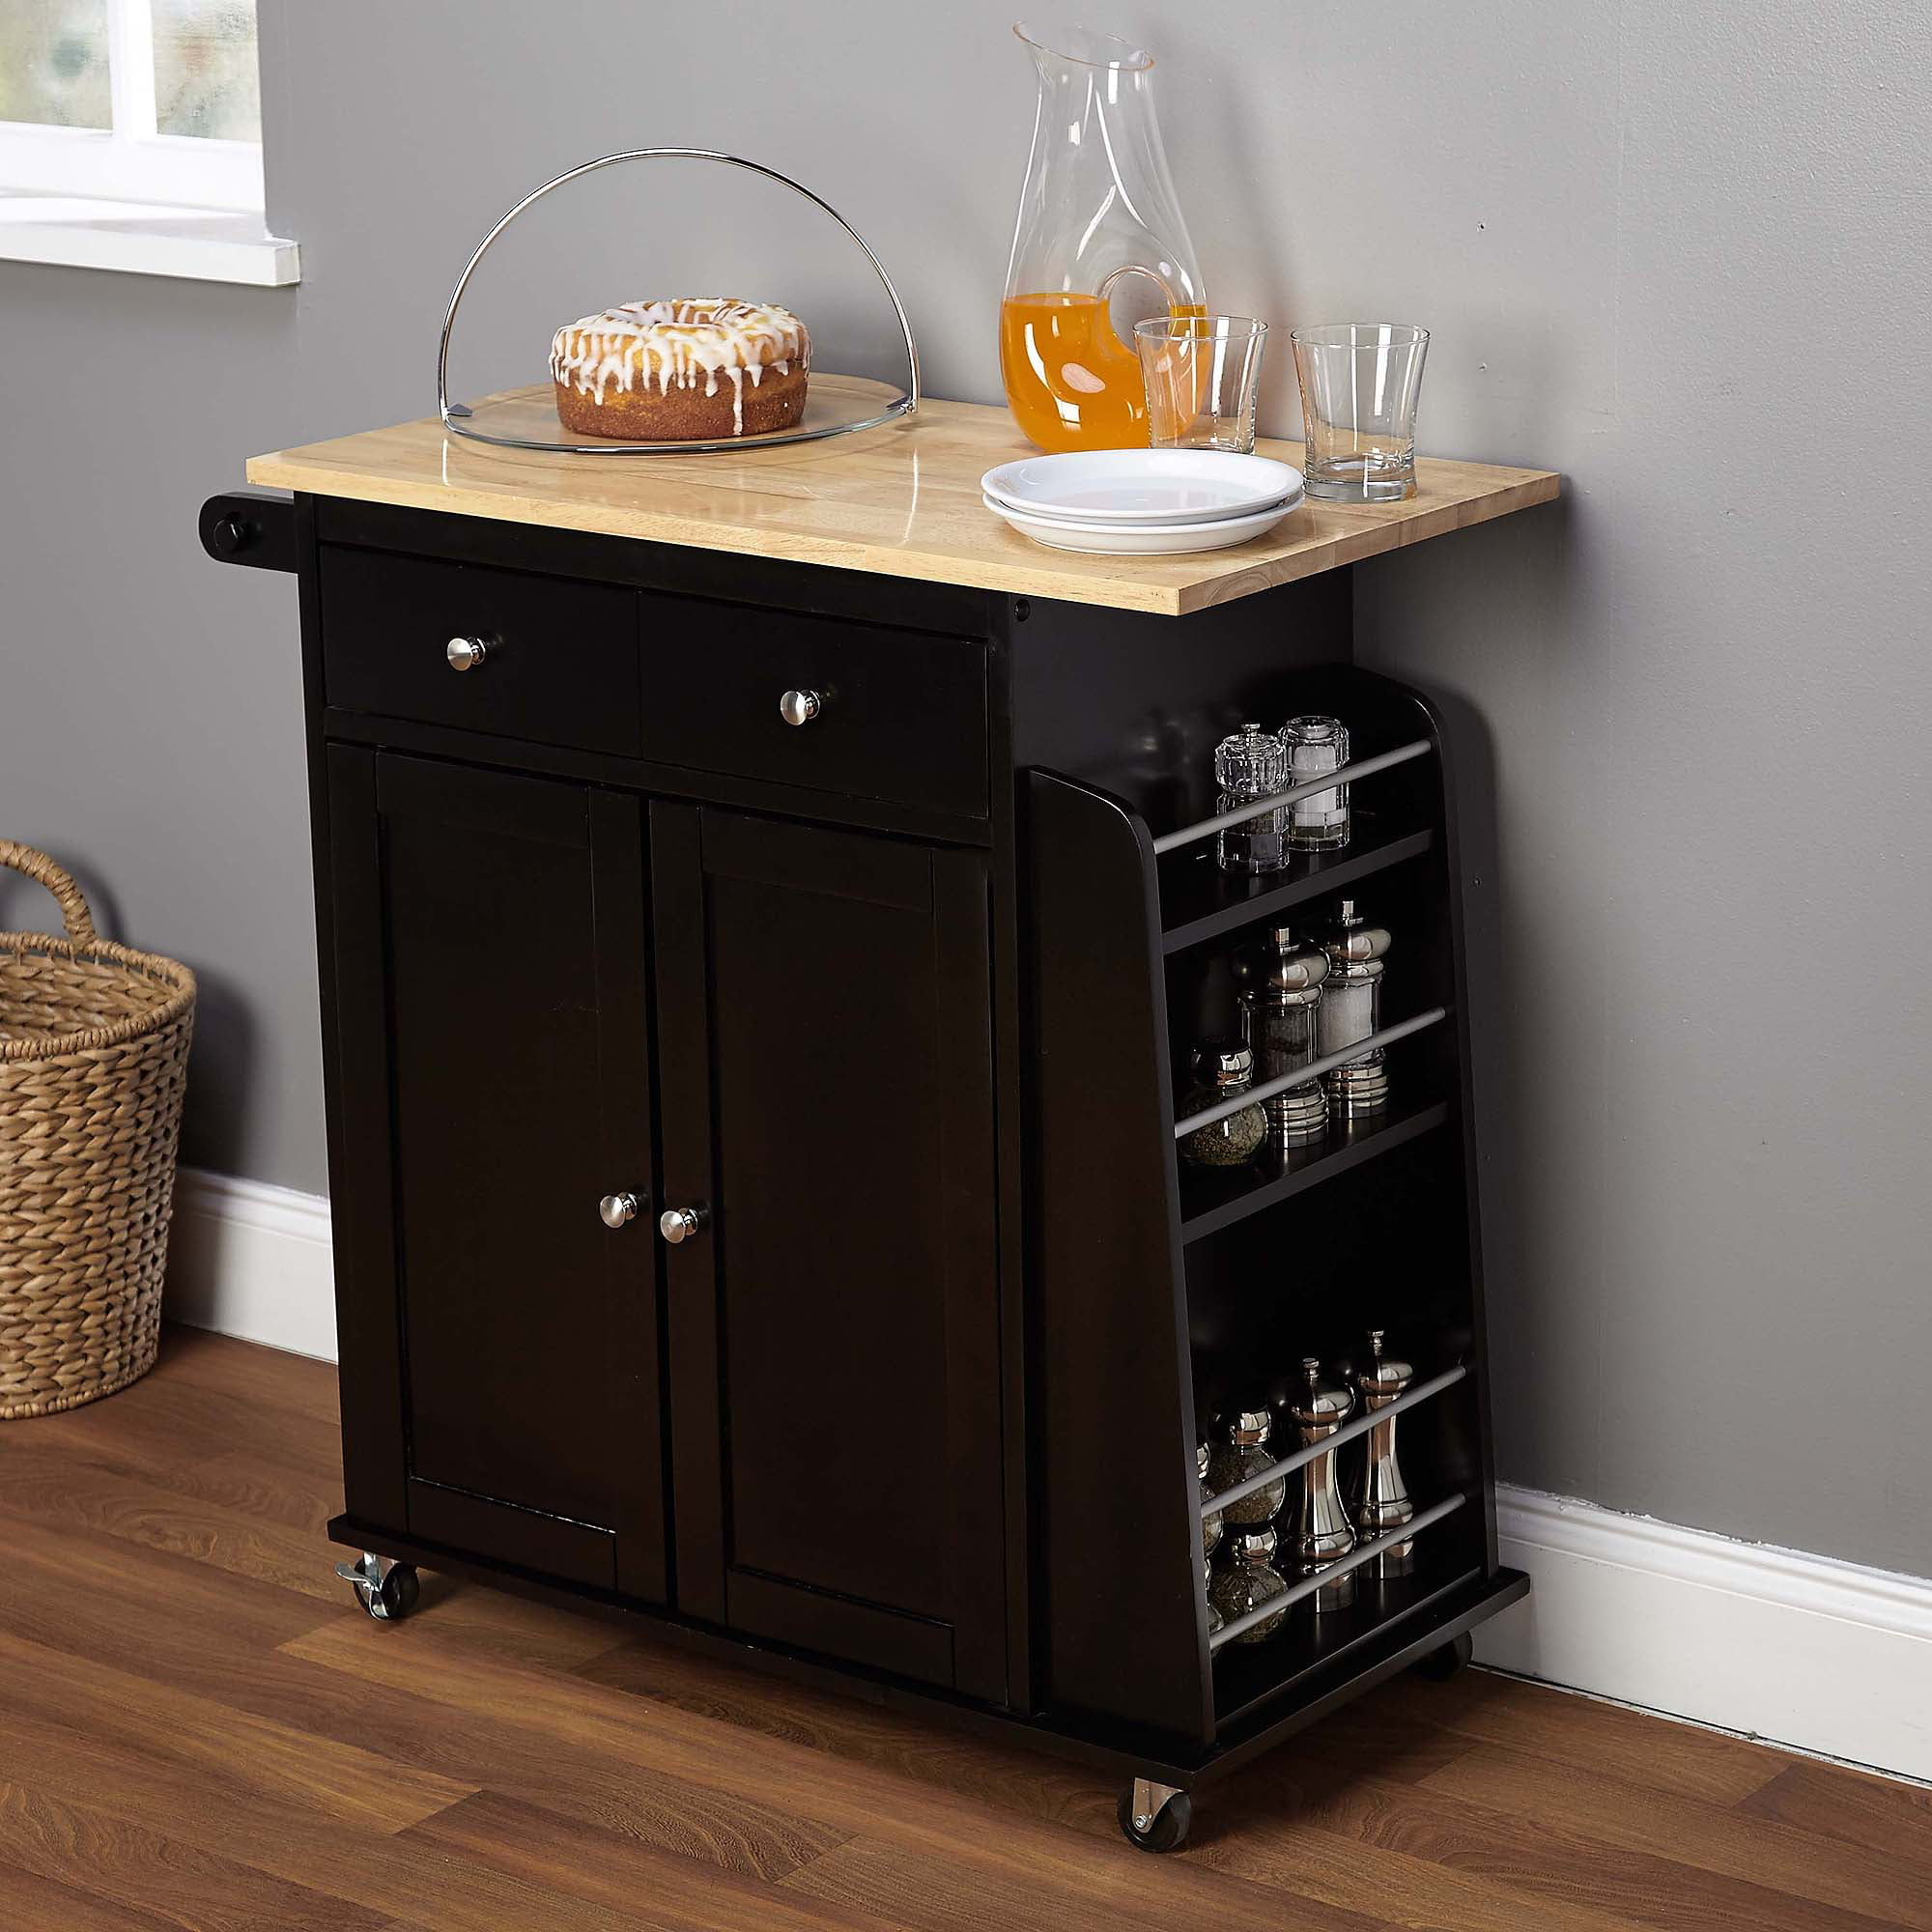 Kitchen Island 48 Inch sundance kitchen cart, multiple colors - walmart